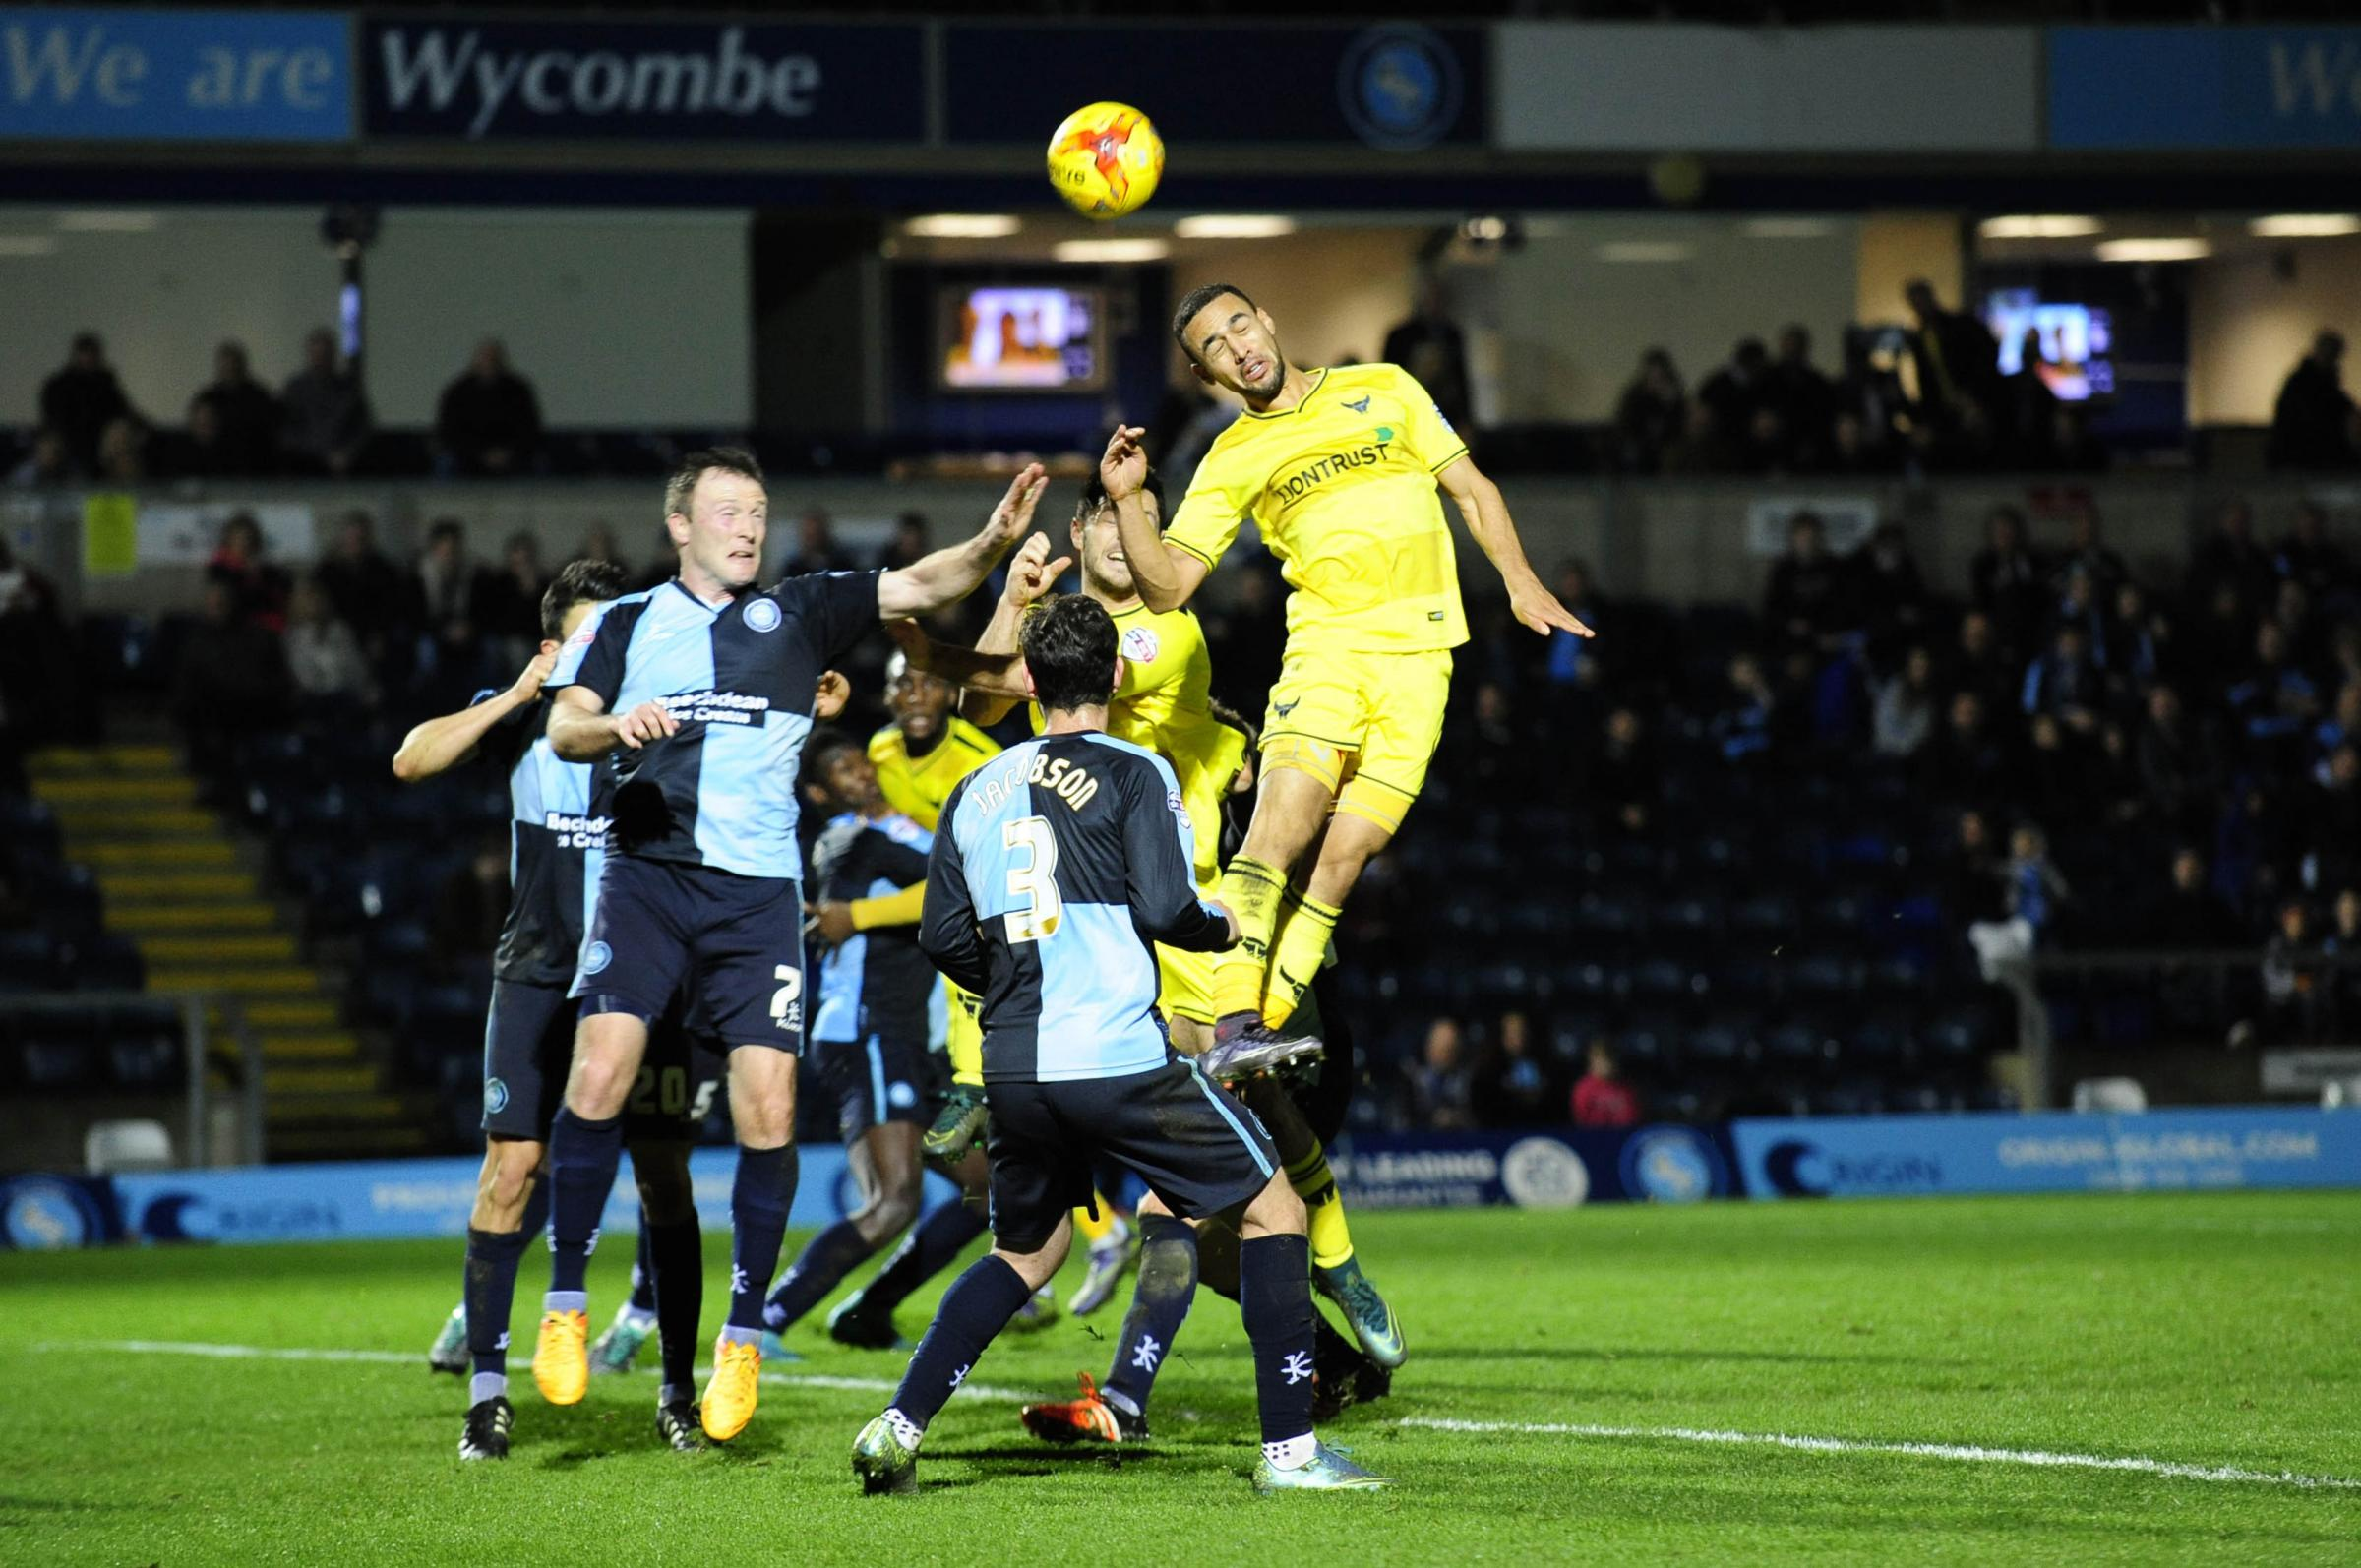 REUNITED: Kemar Roofe wins a header in Oxford United's last visit to Wycombe Wanderers, a 2-1 defeat in 2015  		 Picture: David Fleming